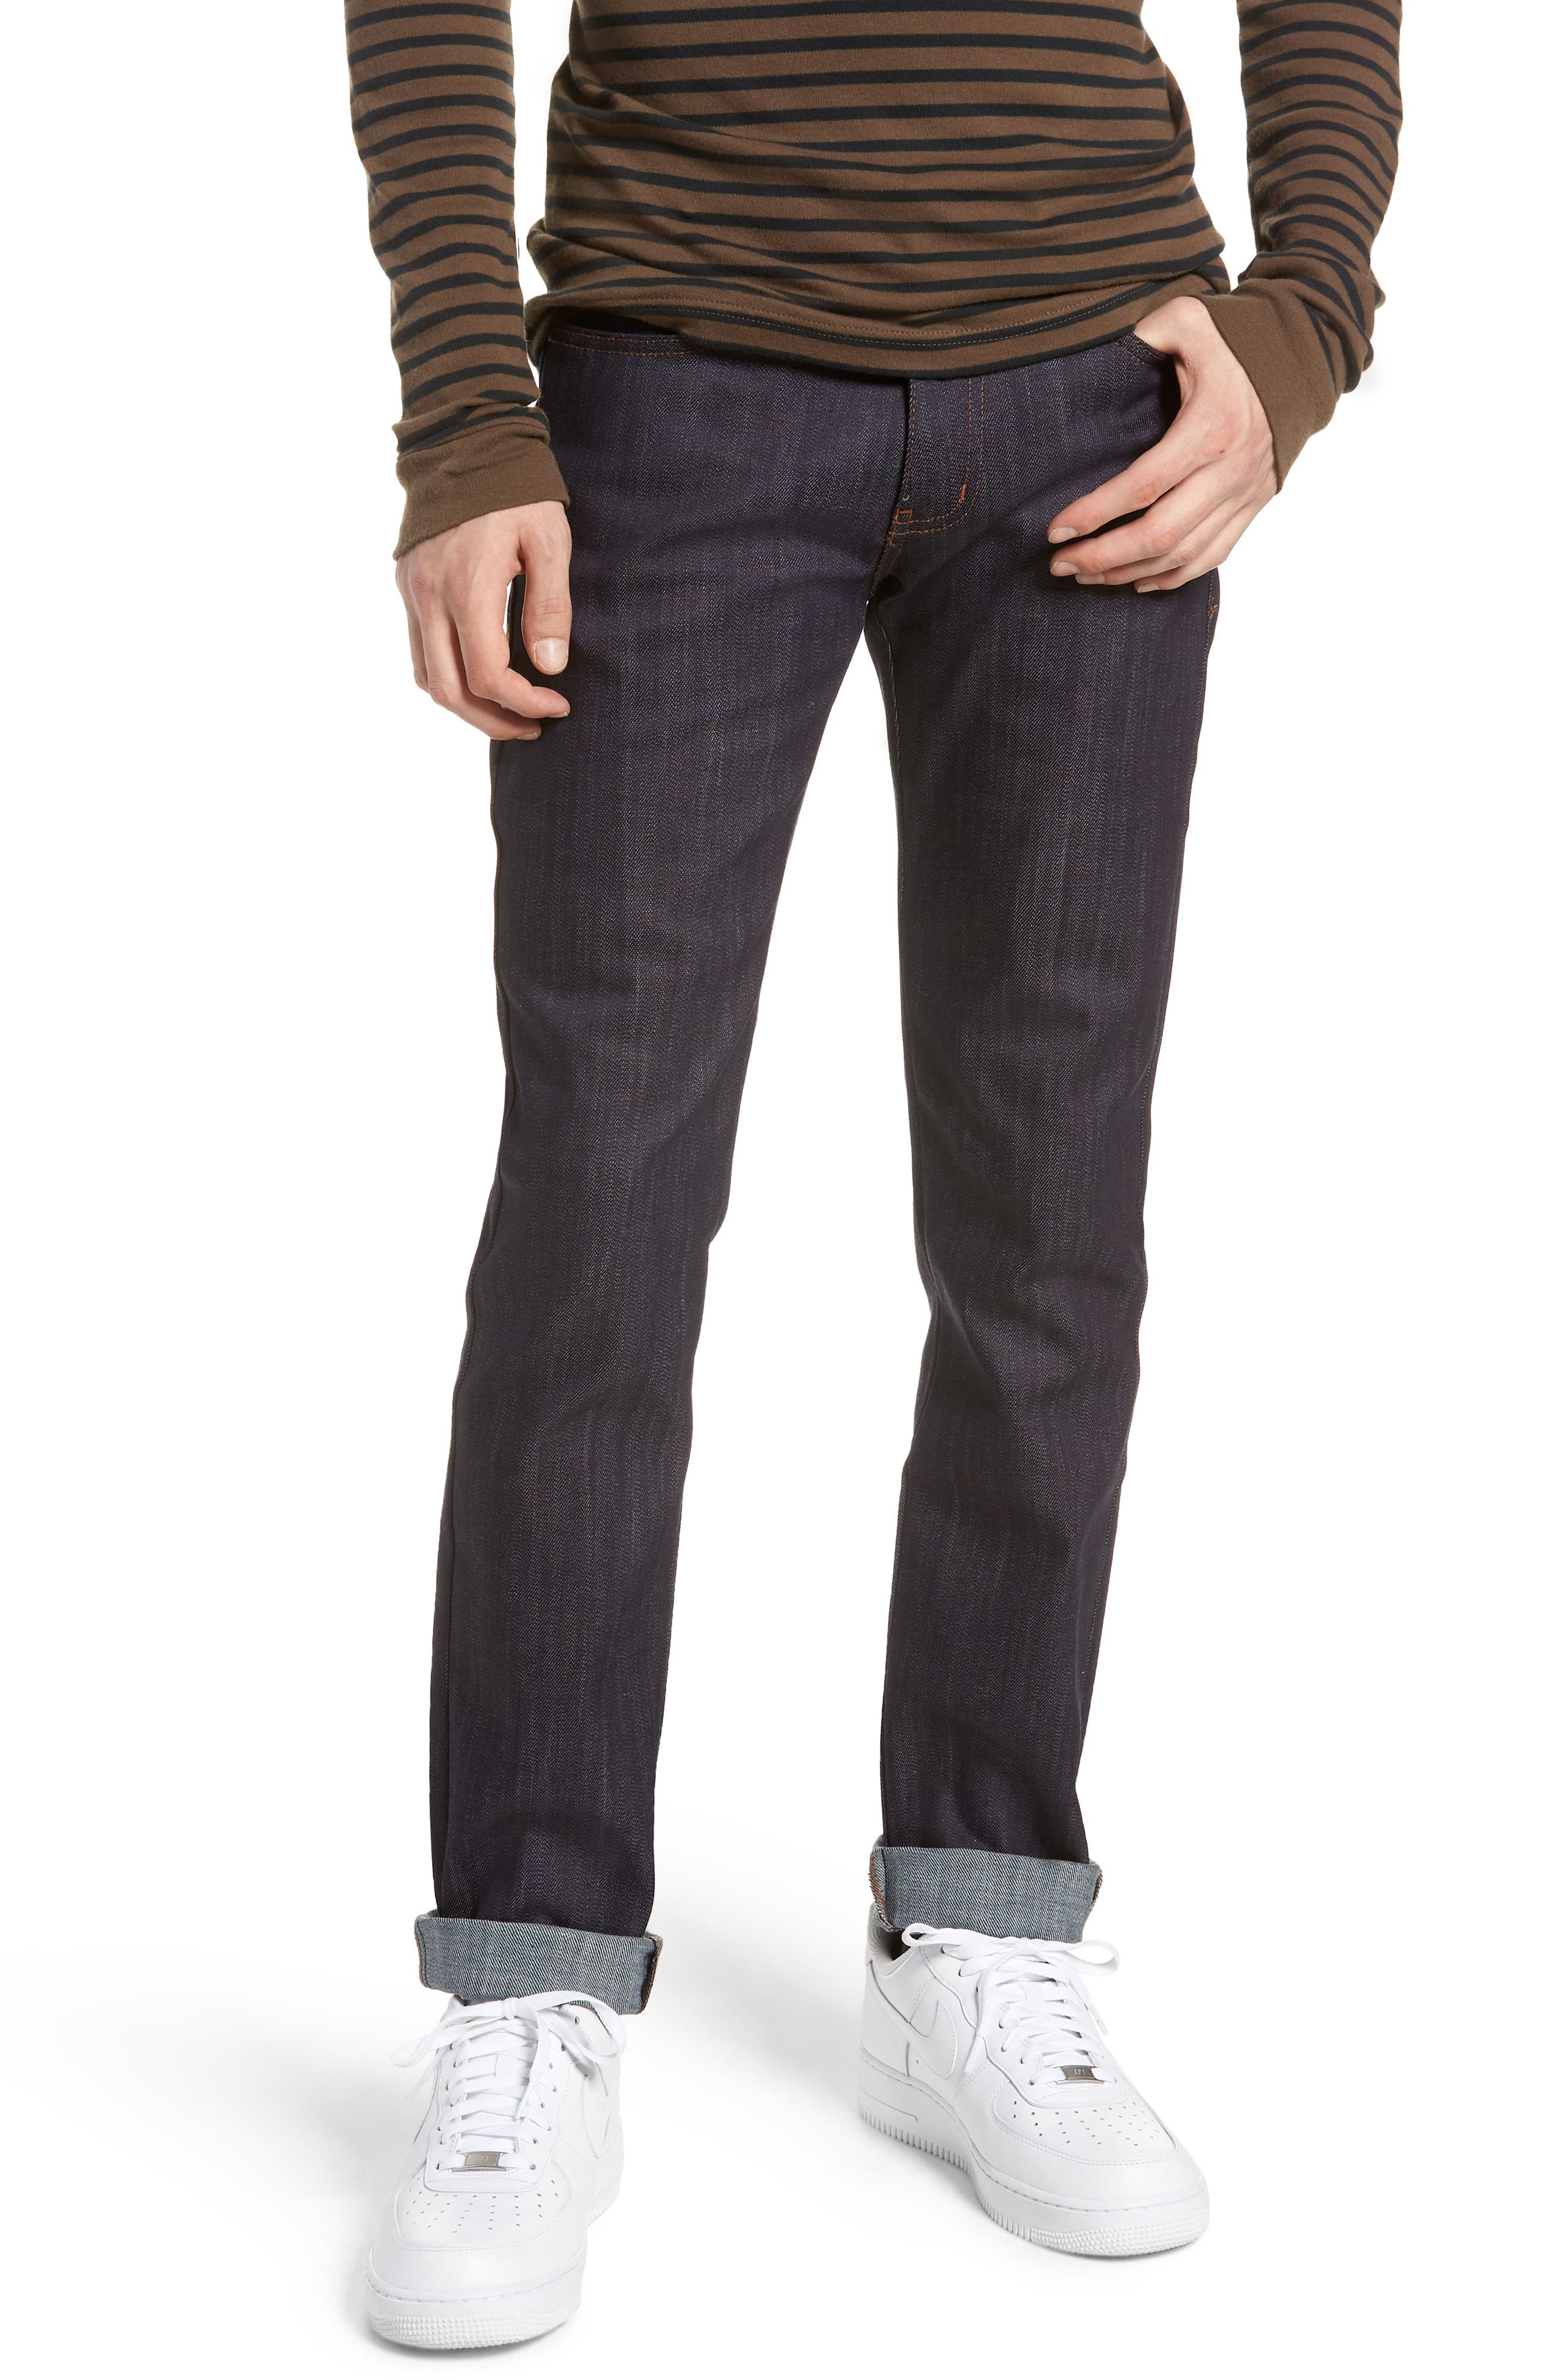 Naked & Famous Super Skinny Guy Skinny Fit Jeans,                             Main thumbnail 1, color,                             INDIGO POWER STRETCH